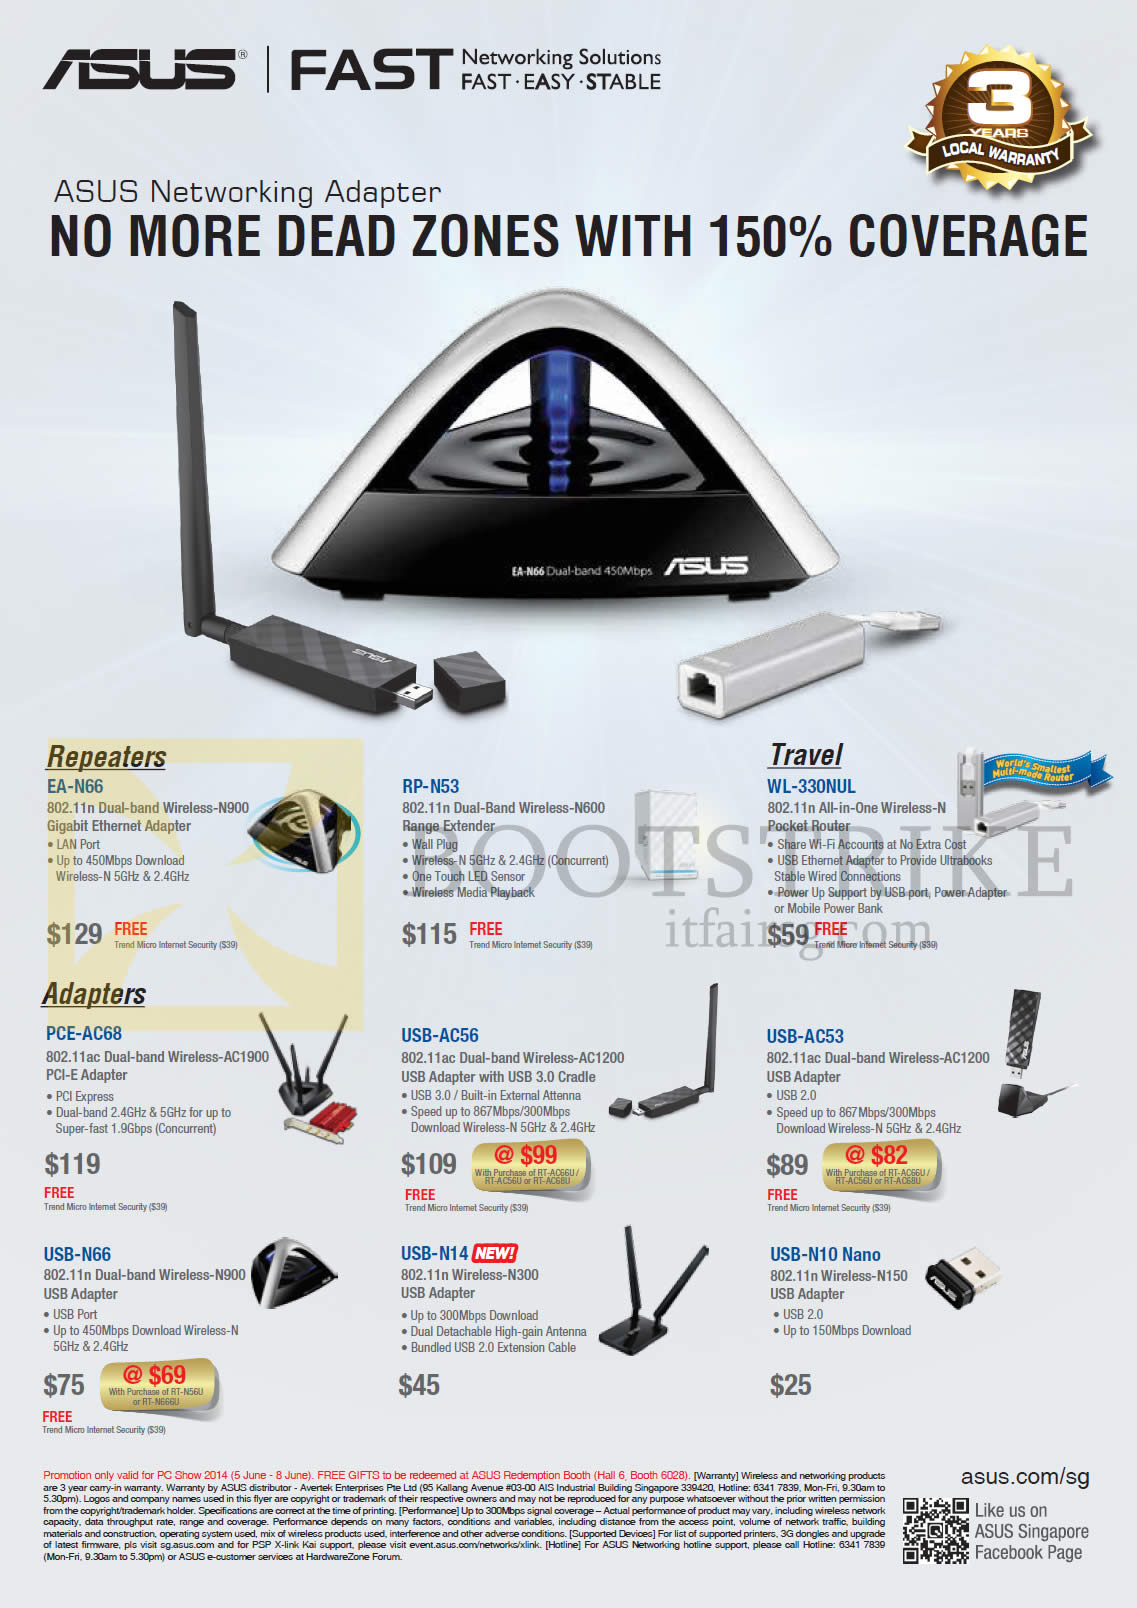 http://cdn.itfairsg.com/pcshow2014/images/ASUS%20Networking%20Wireless%20Repeaters%2C%20Adapters%2C%20EA-N66%2C%20RP-N53%2C%20WL-330NUL%2C%20PCe-AC68%2C%20USB-AC56%2C%20AC53%2C%20N66%2C%20N14%2C%20N10%20Nano.jpg